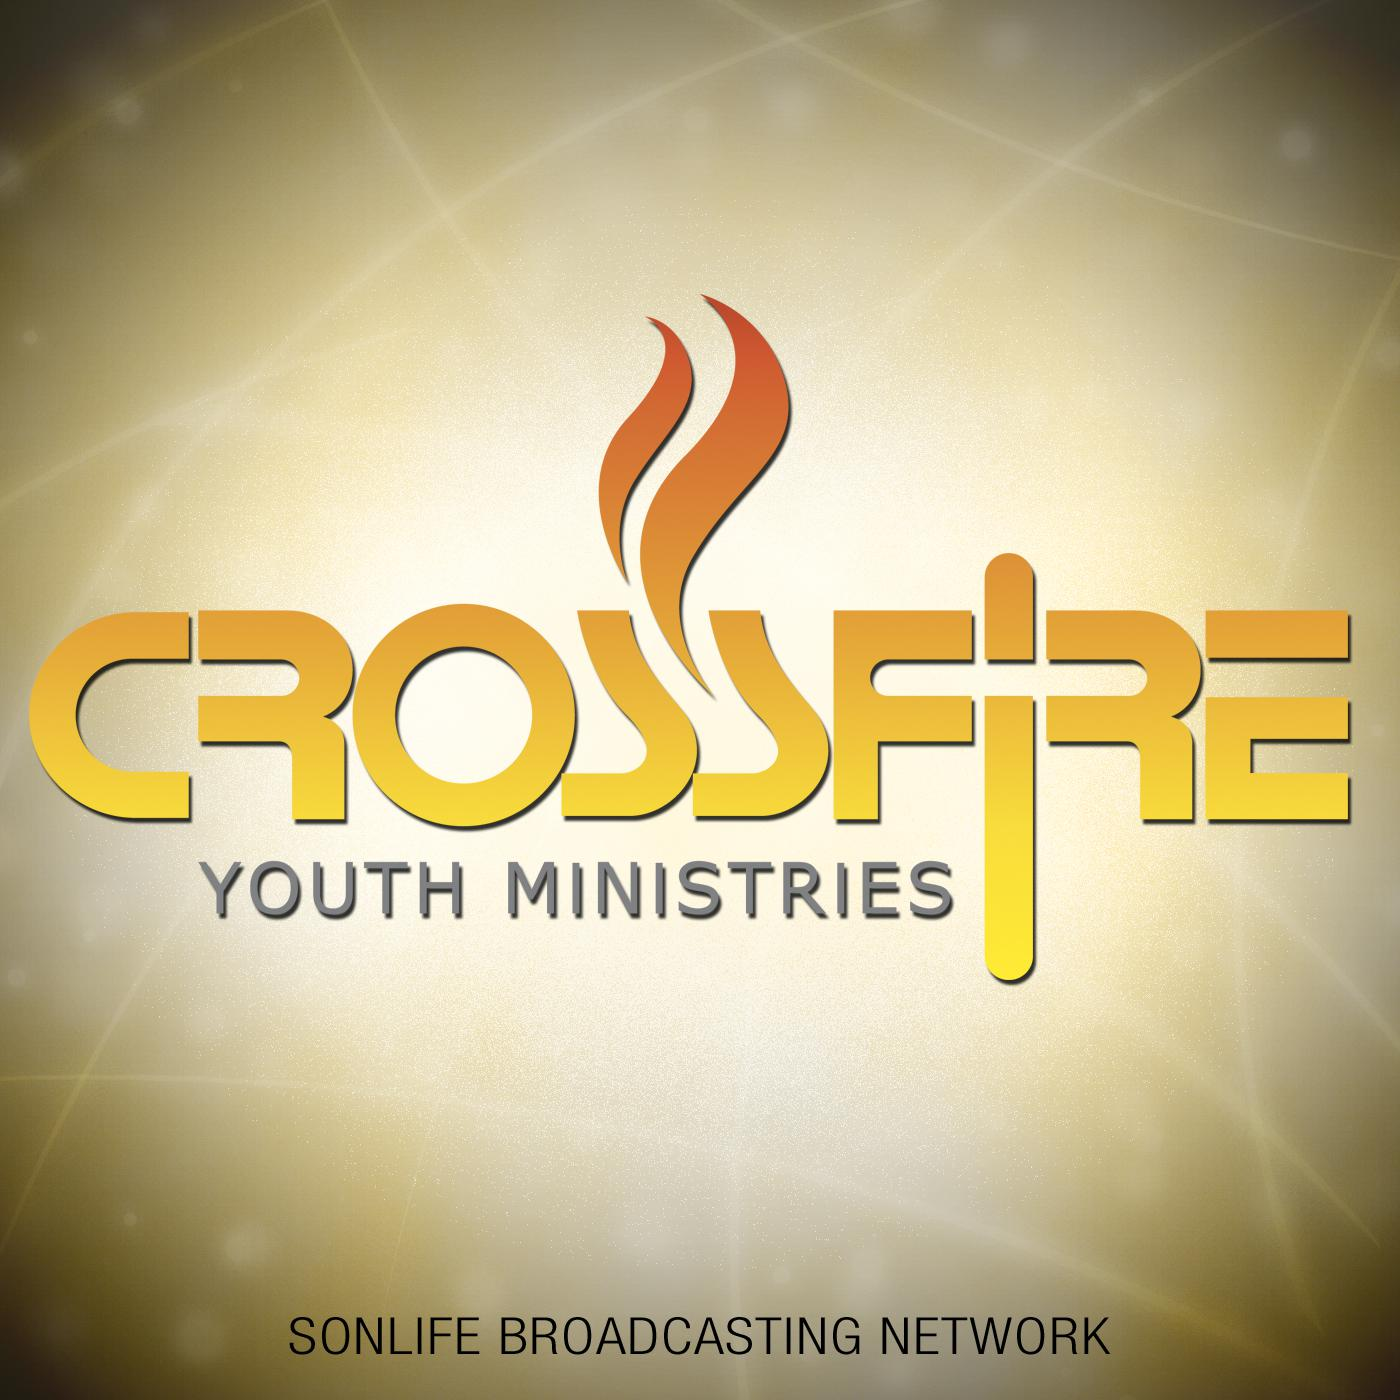 Crossfire Youth Ministry (podcast) - Jimmy Swaggart Ministries